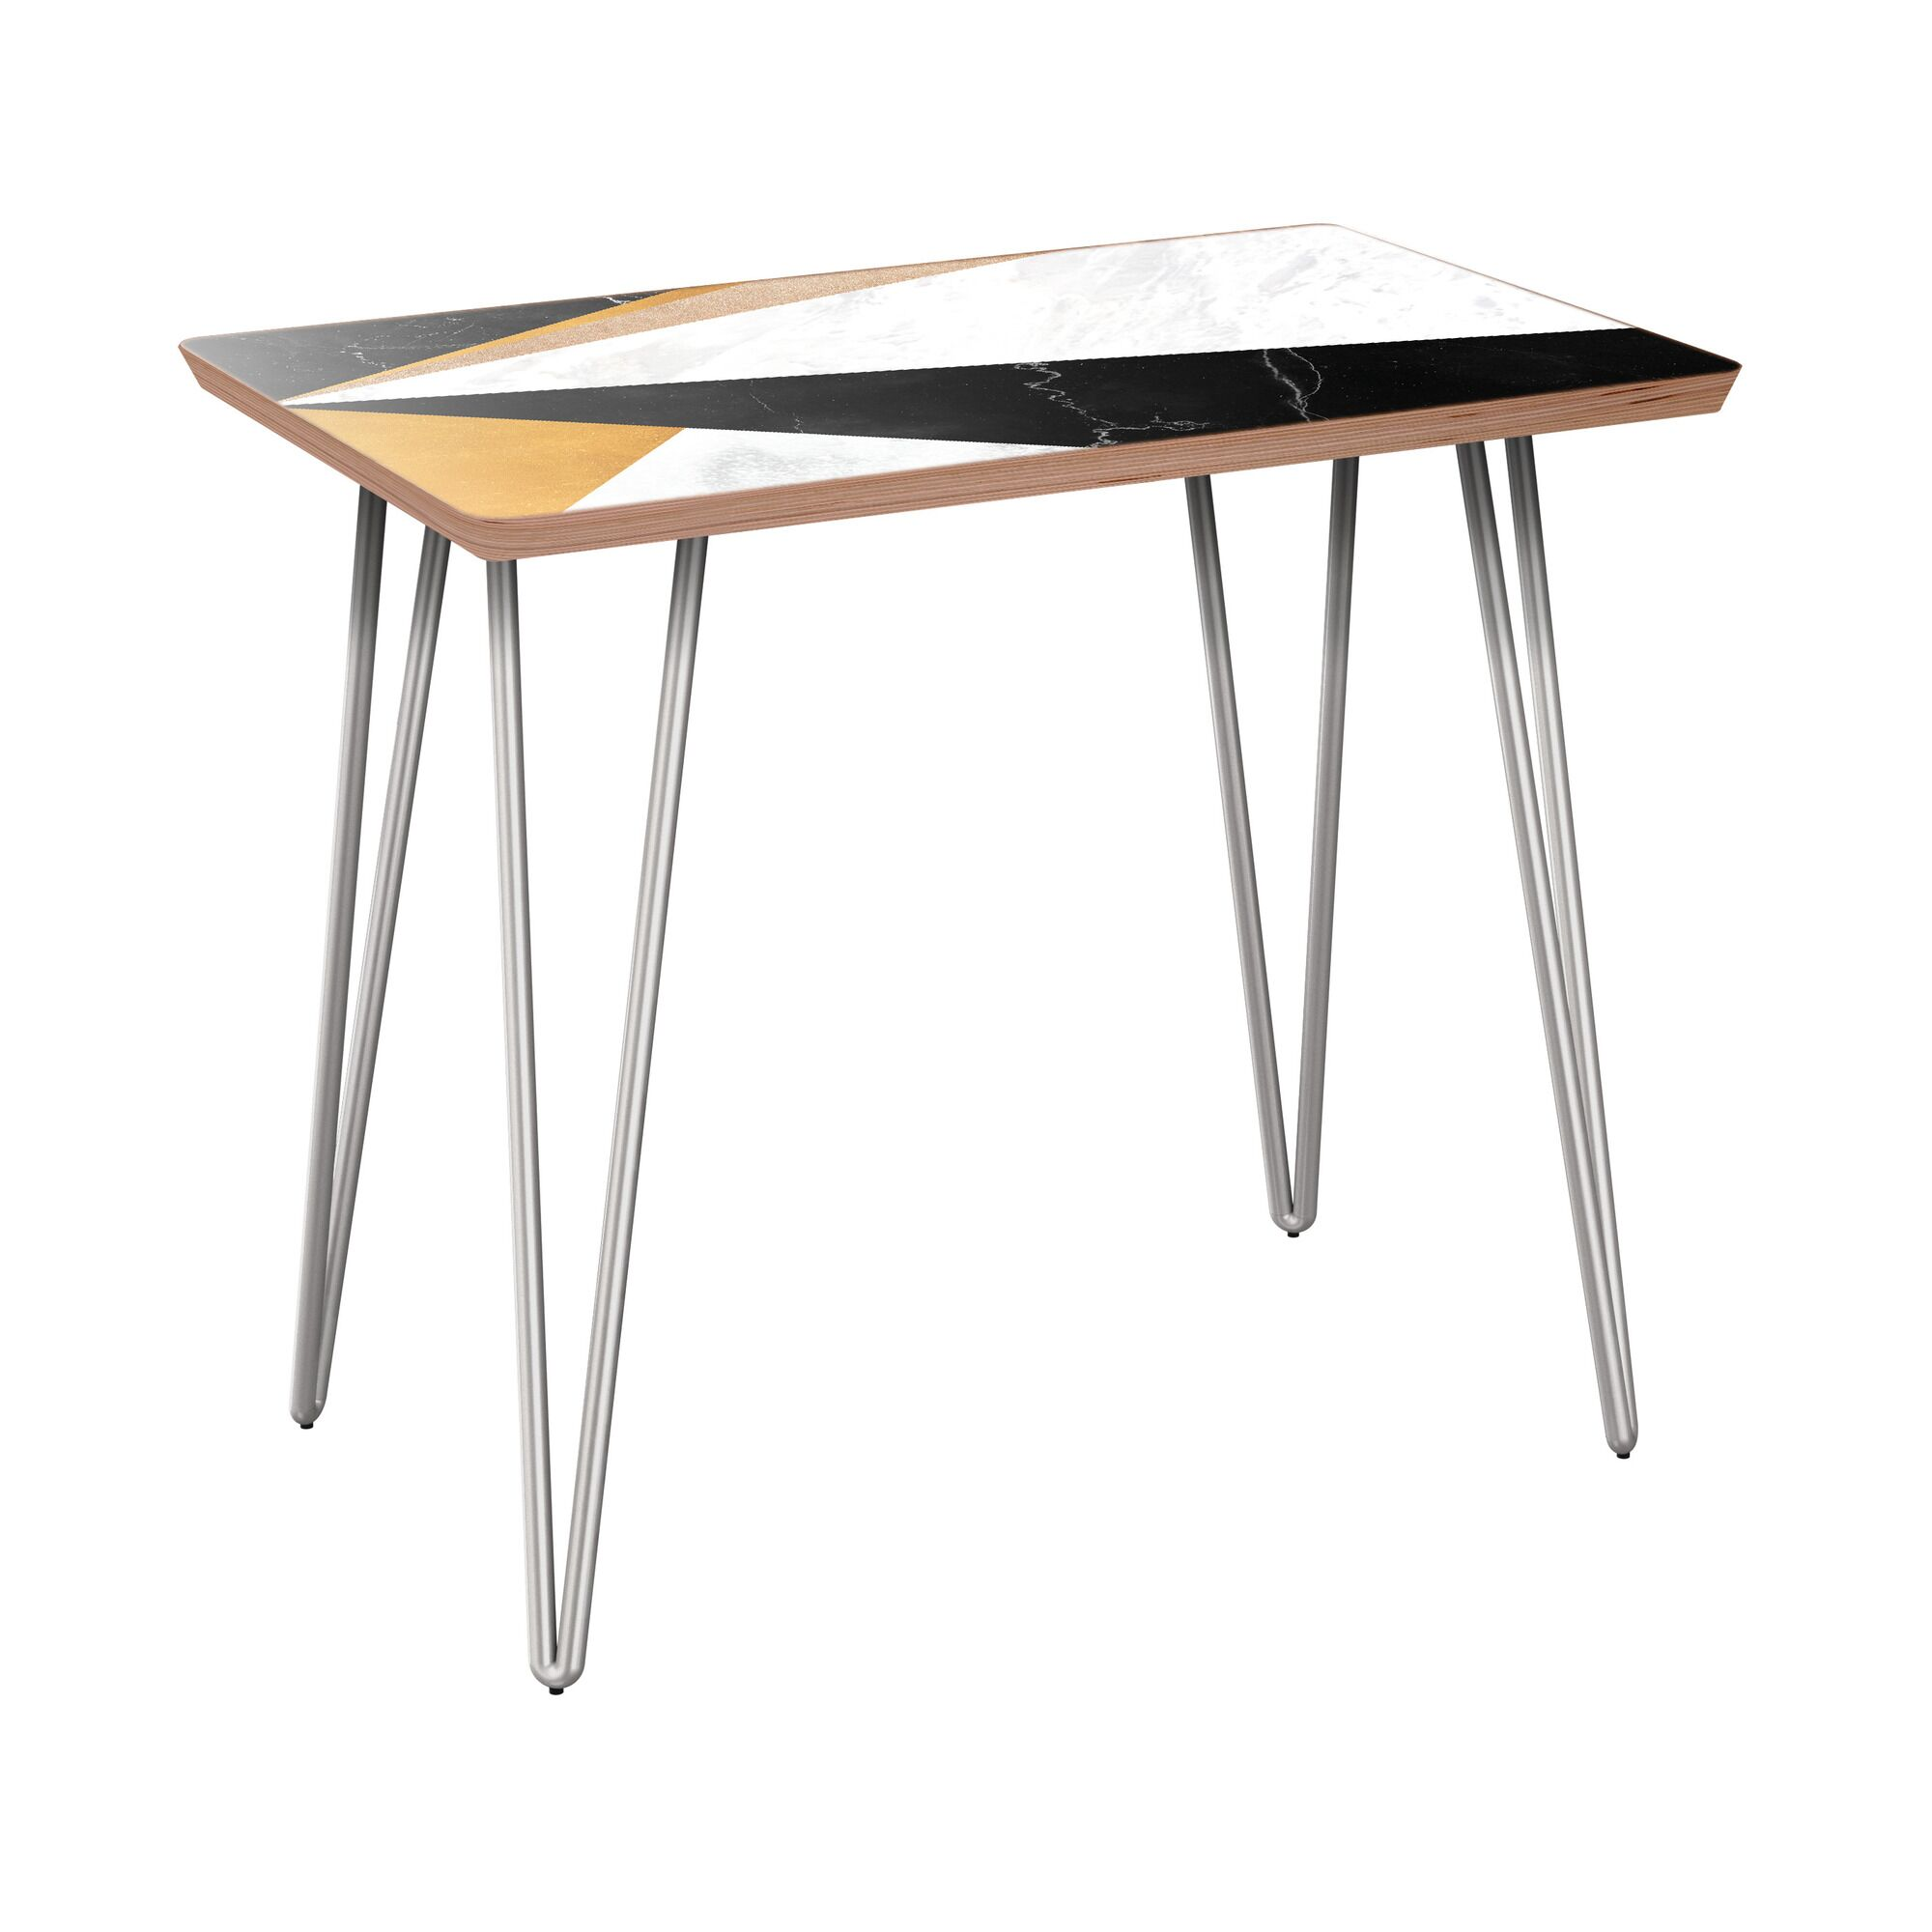 Rozar End Table Table Base Color: Chrome, Table Top Color: Walnut/Black